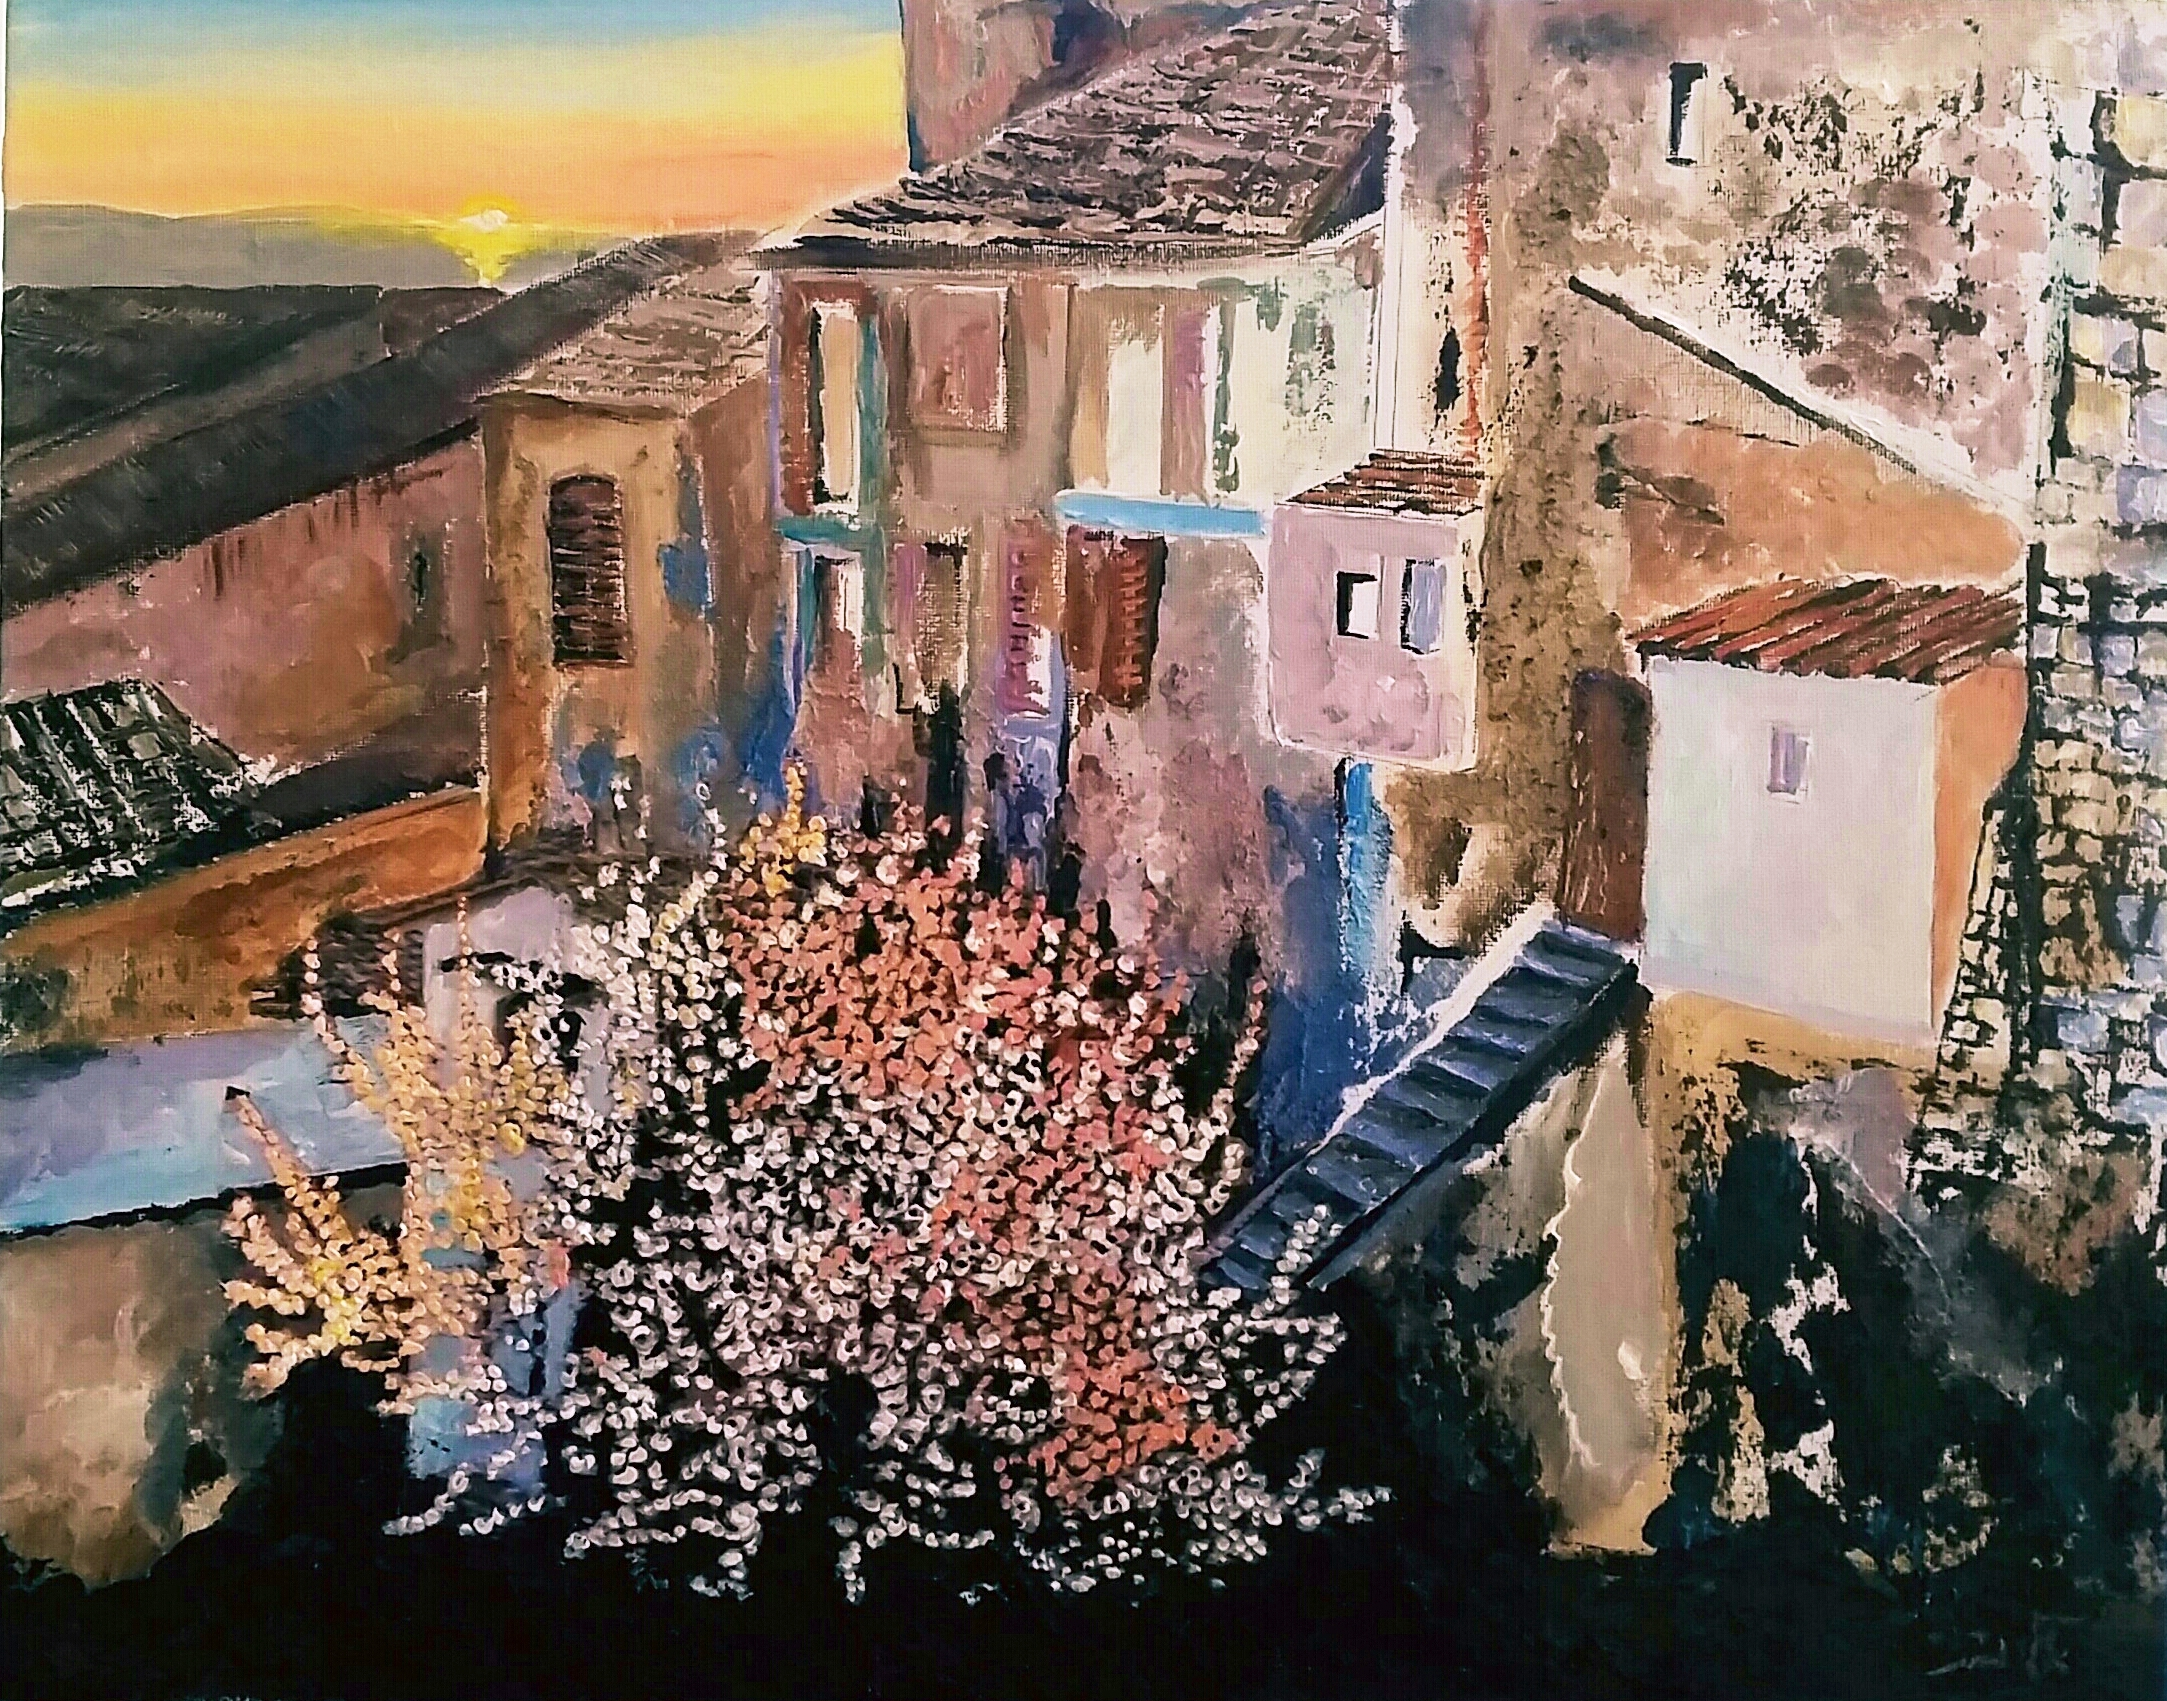 Memories of an ancient village with sweet fragnance of Almond blossom -